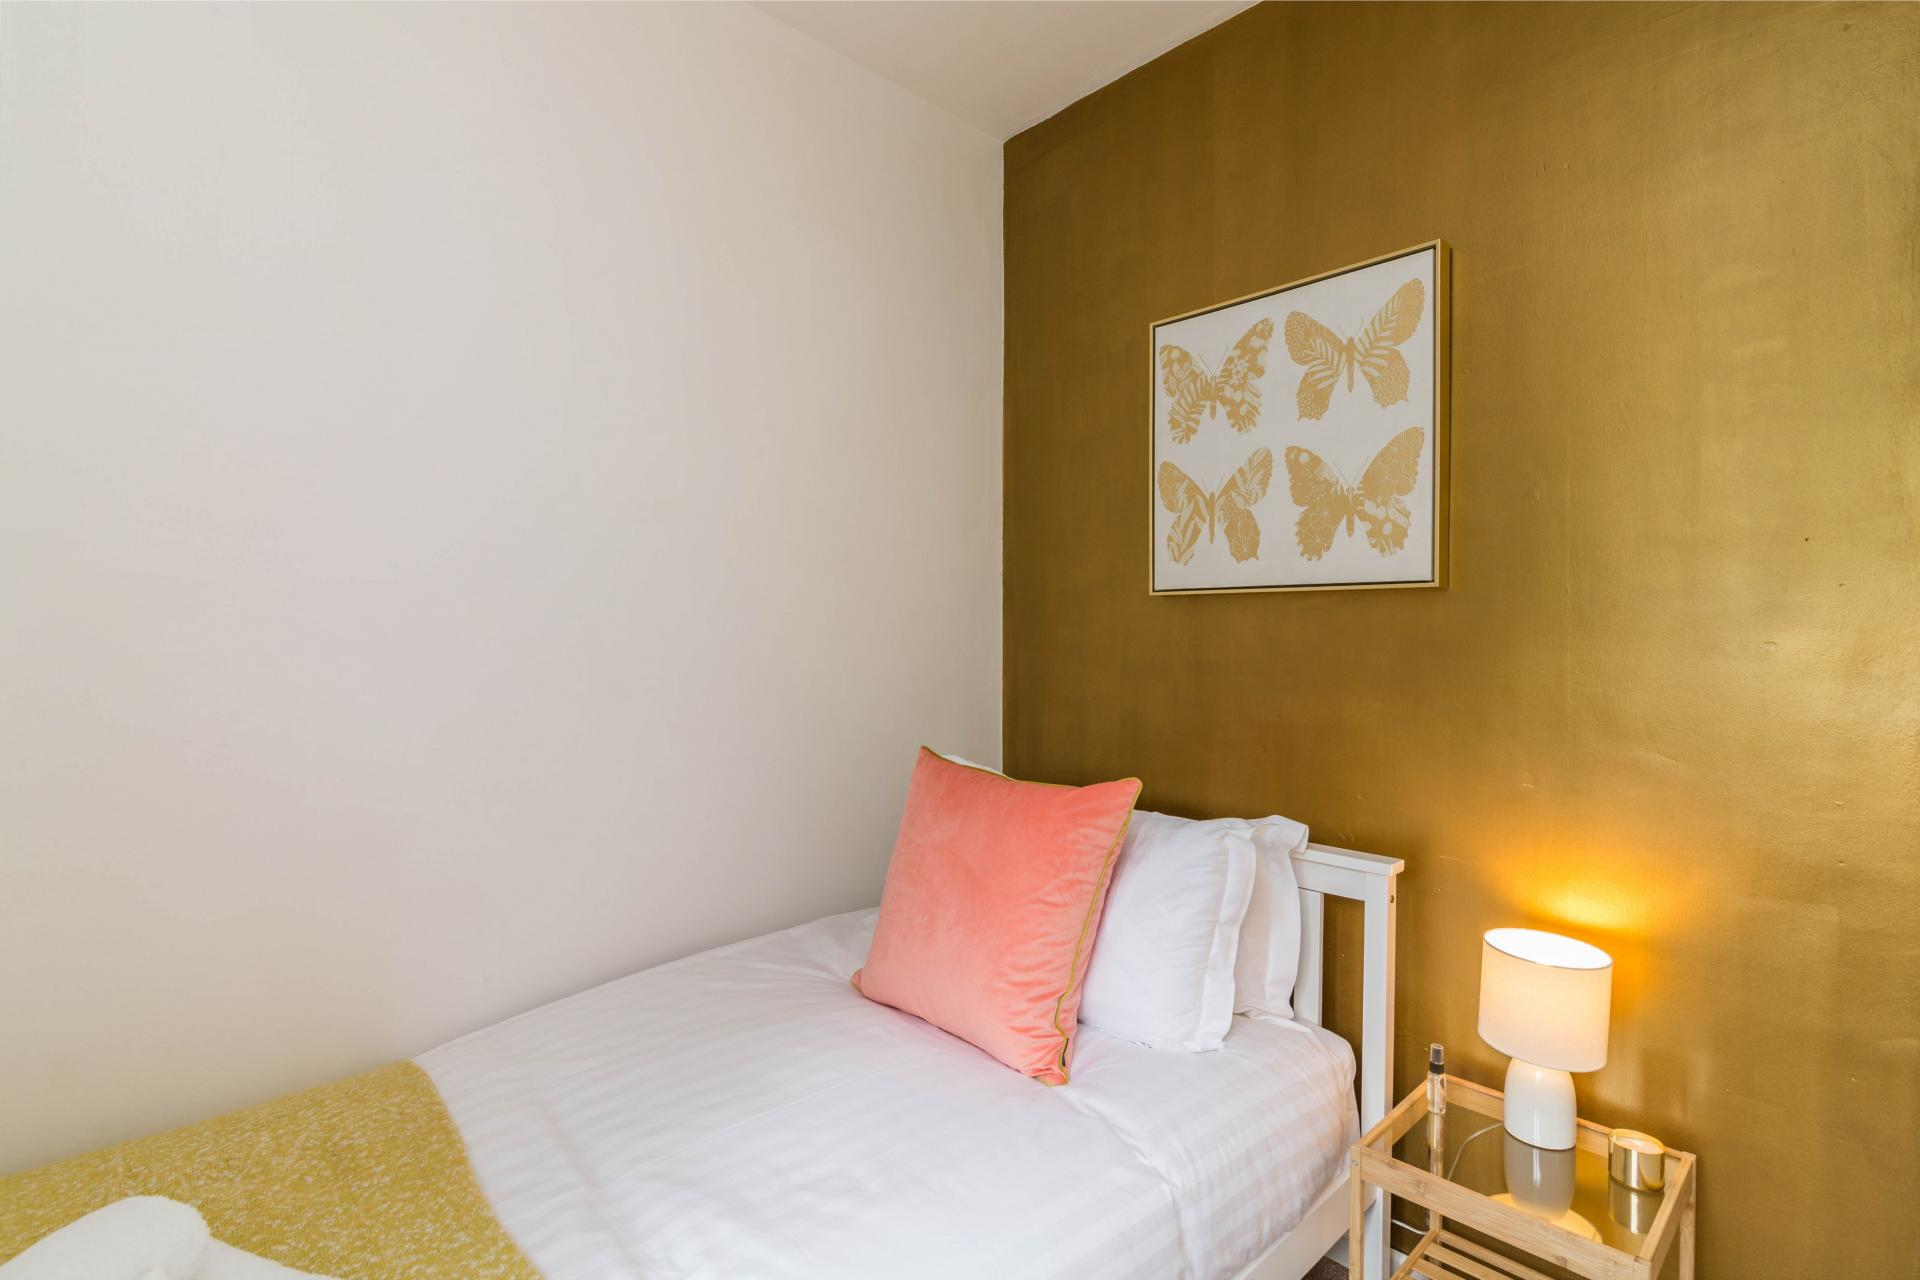 Single bed at Mapperley House, Mapperley Park, Nottingham - Citybase Apartments